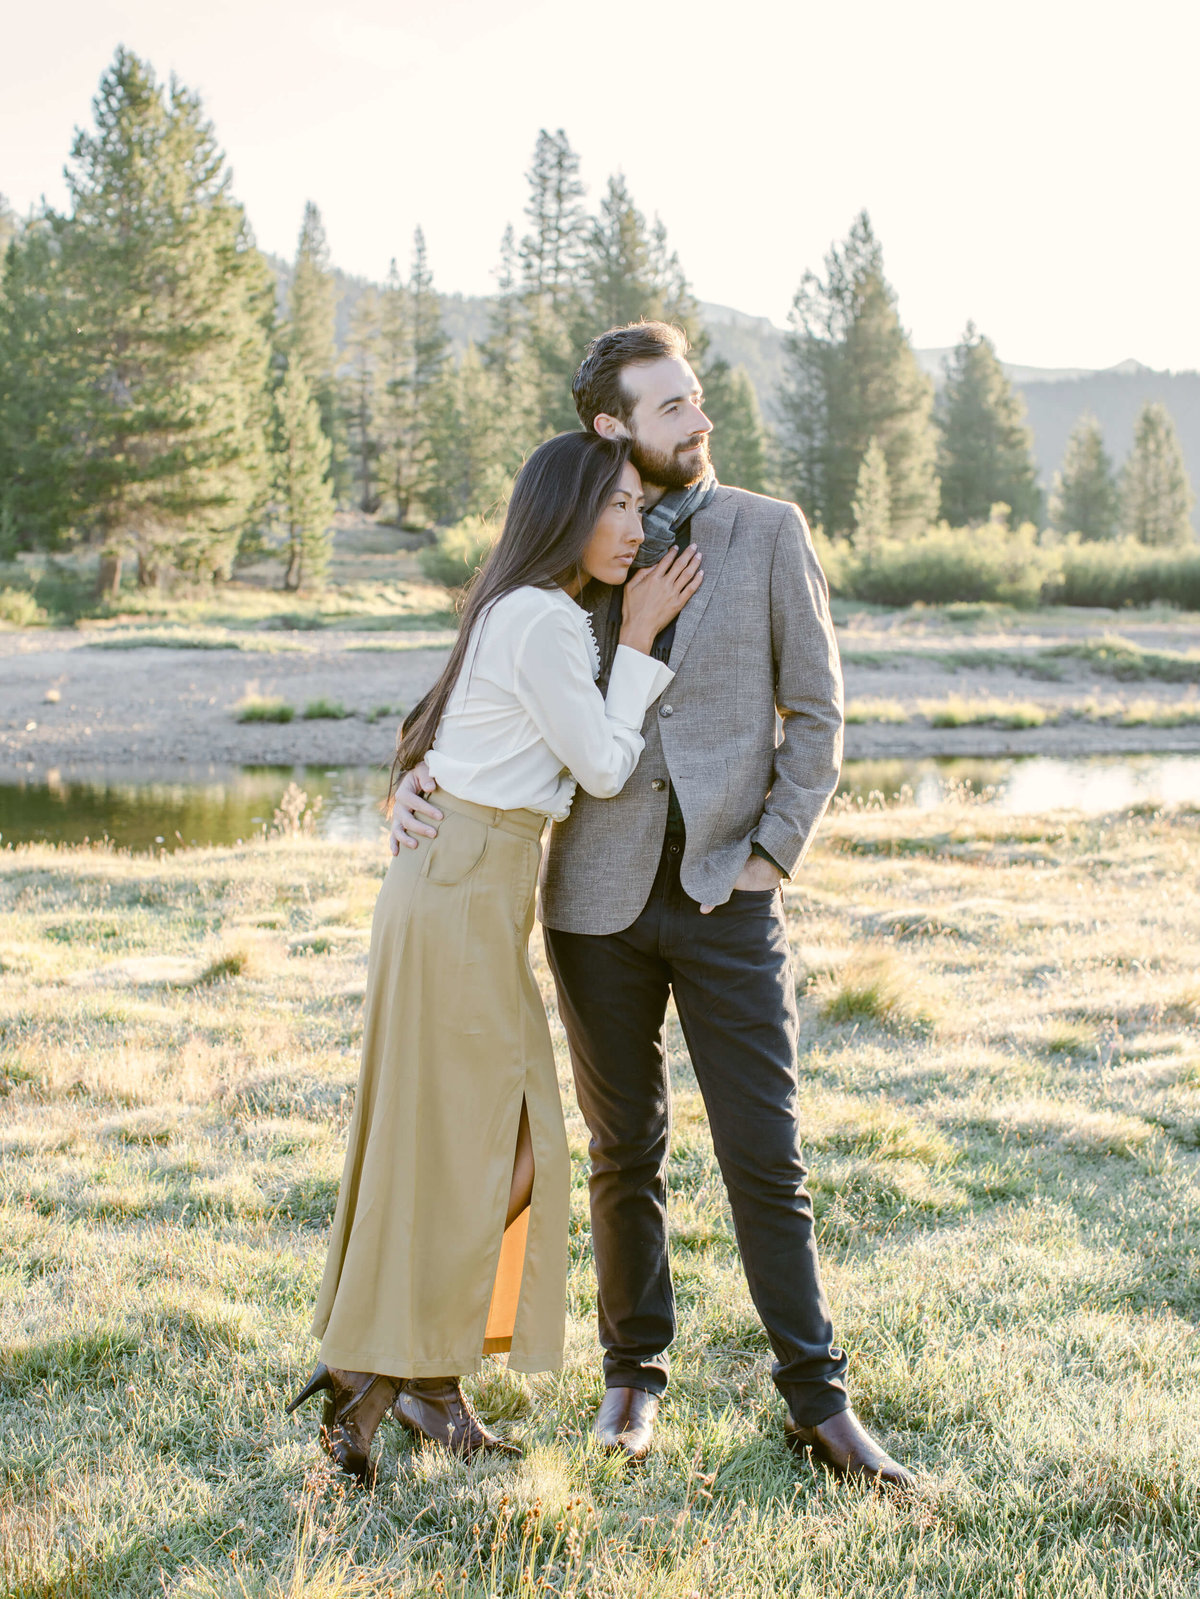 21-KTMerry-destination-engagement-session-Yosemite-national-park